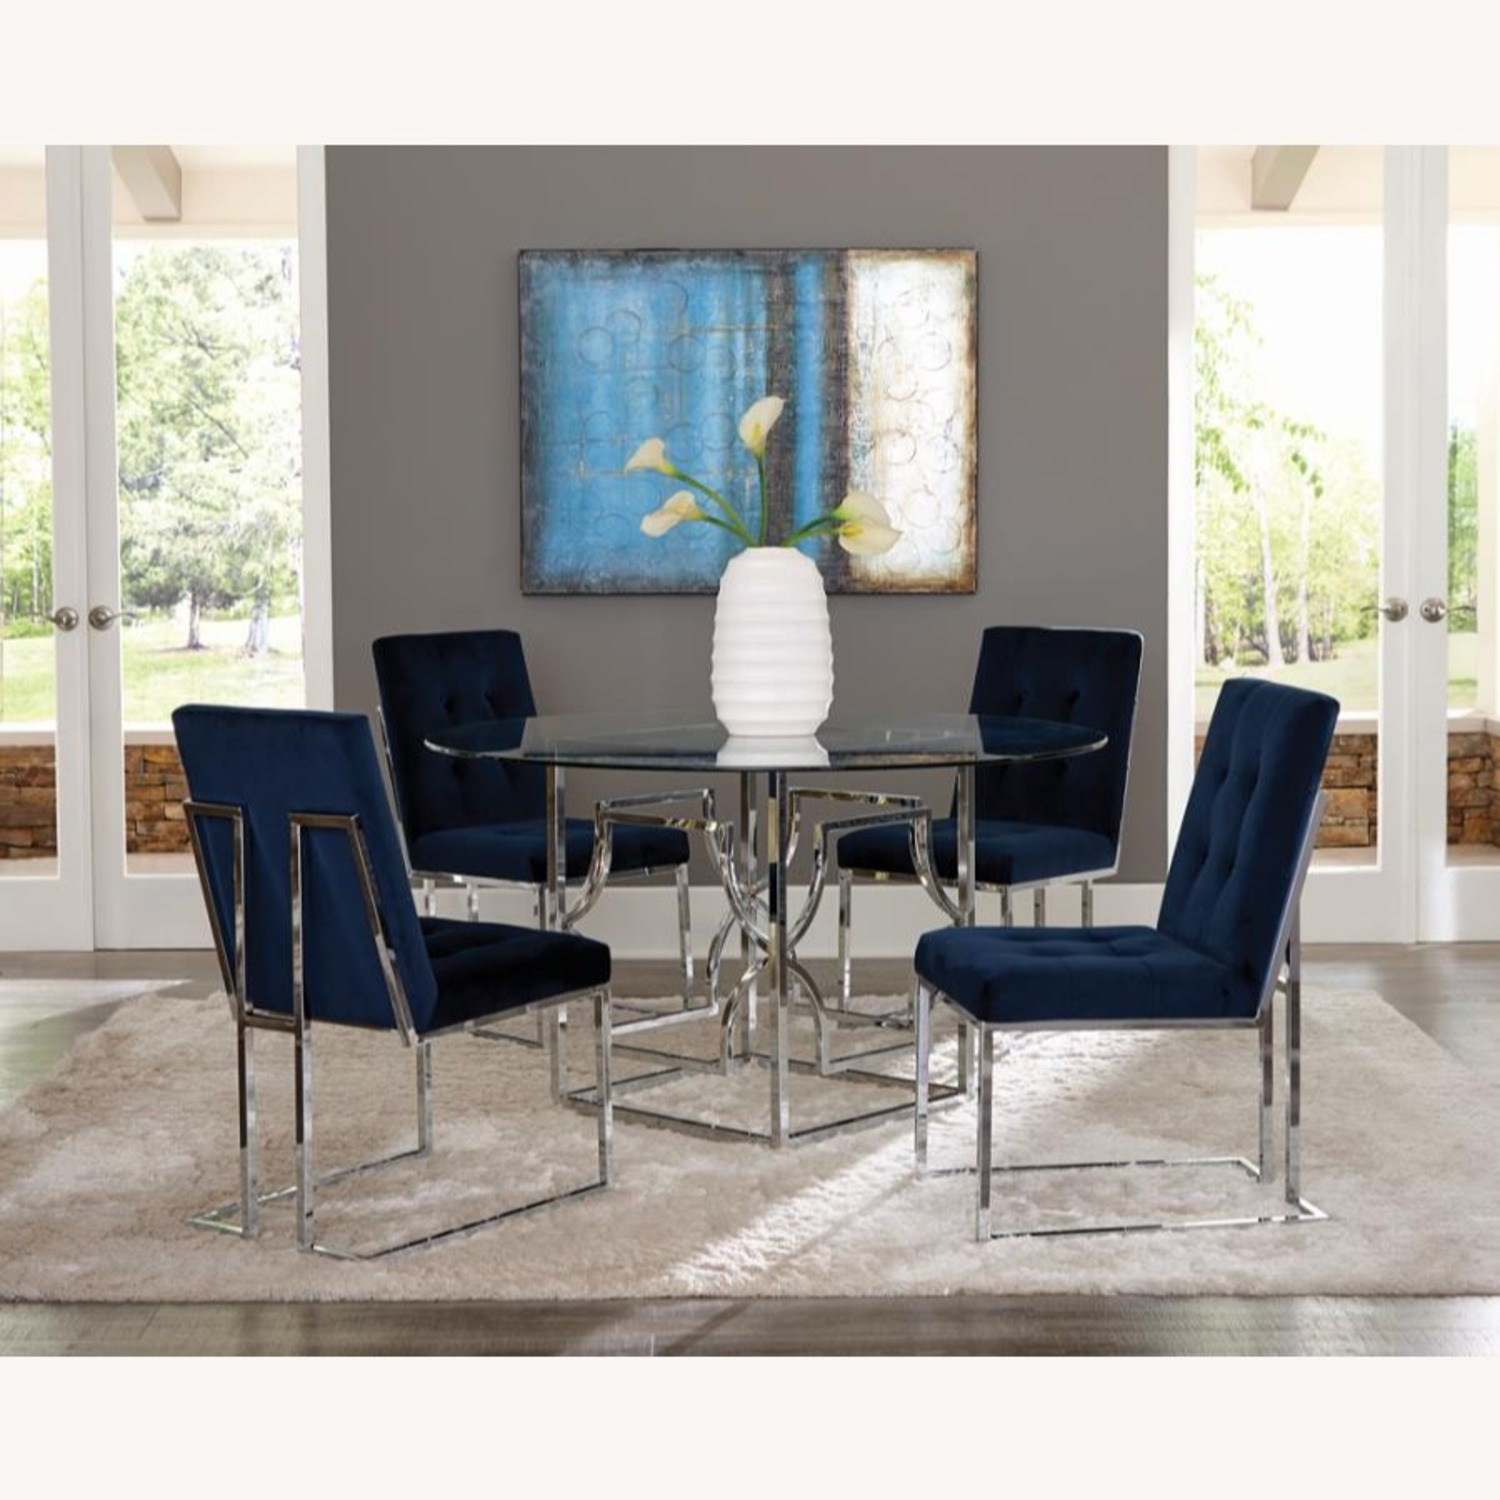 Dining Table In Chrome Patterned Base - image-4